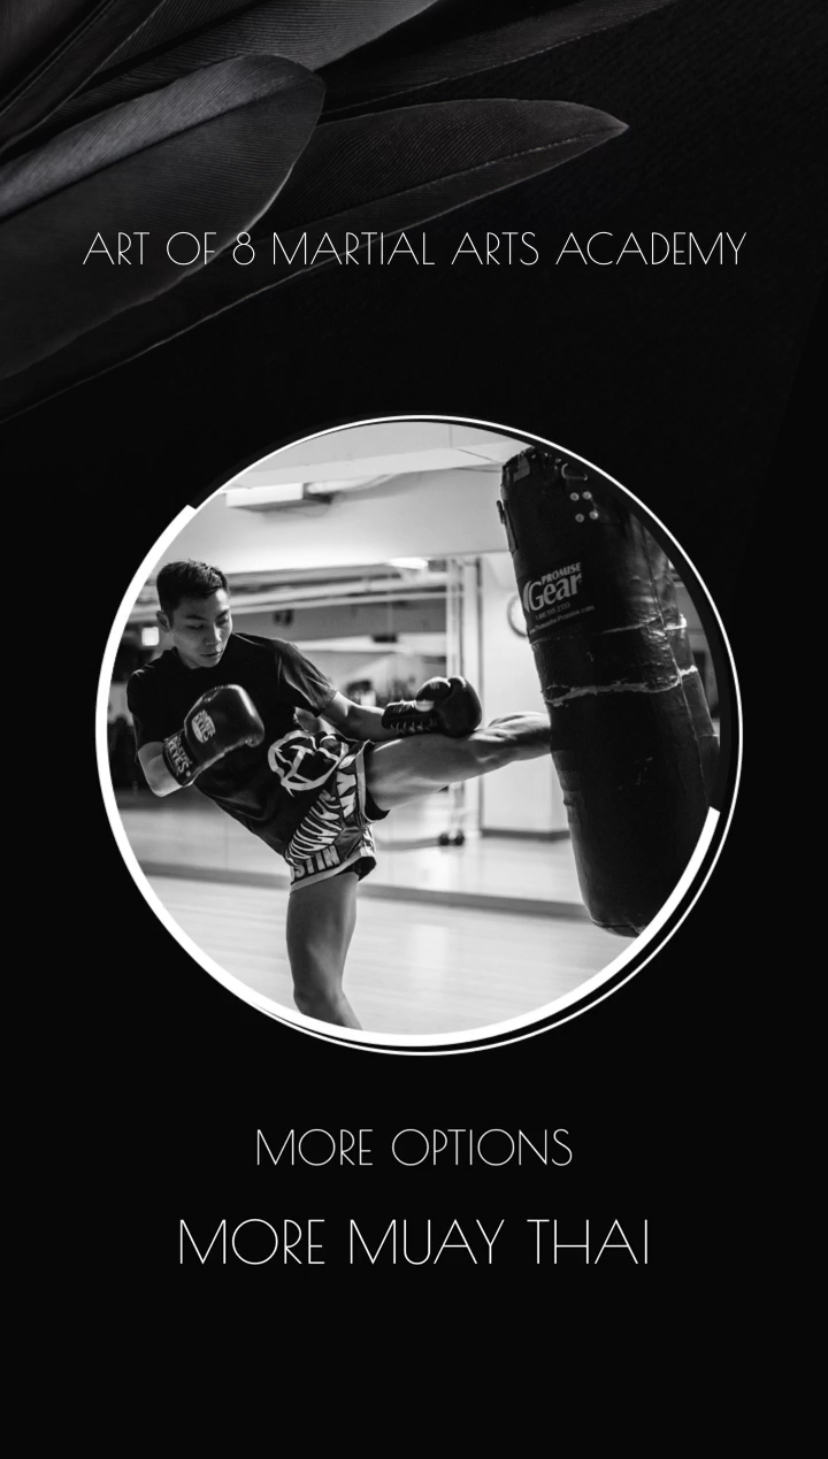 Art of 8 Martial Arts Academy is the first and only Muay Thai program in Orangeville. Learn the art of 8 limbs from a multiple time champion!